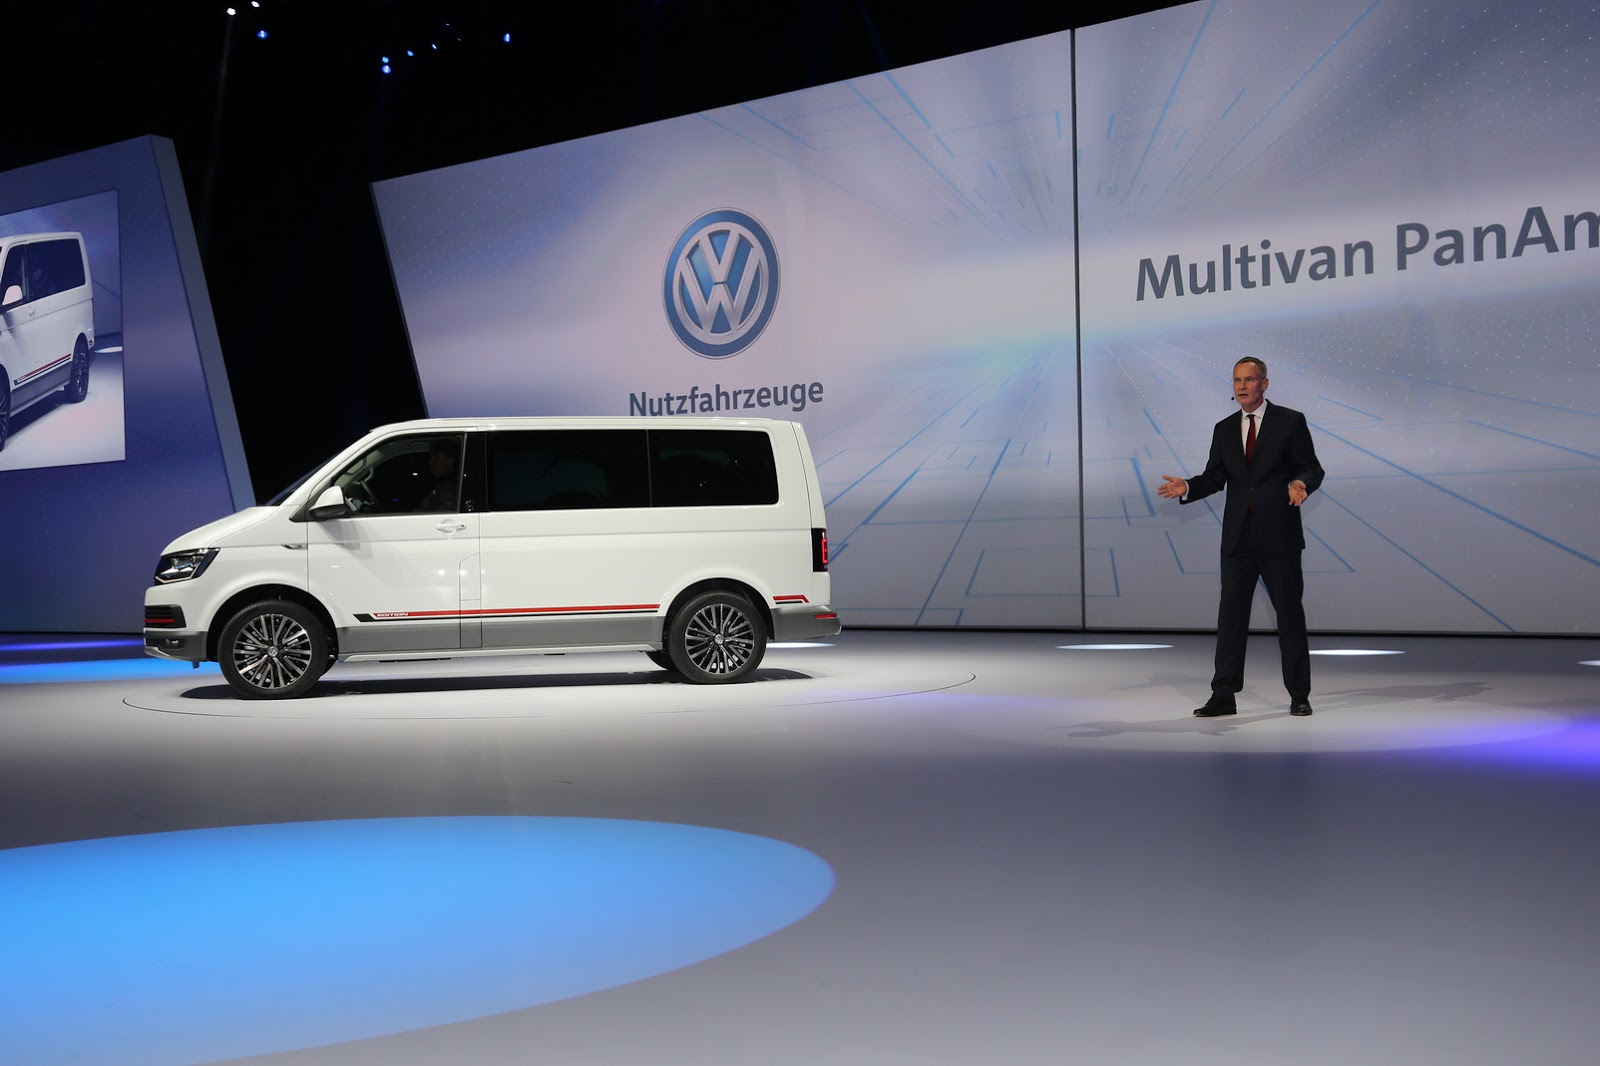 2015 volkswagen multivan panamericana. Black Bedroom Furniture Sets. Home Design Ideas